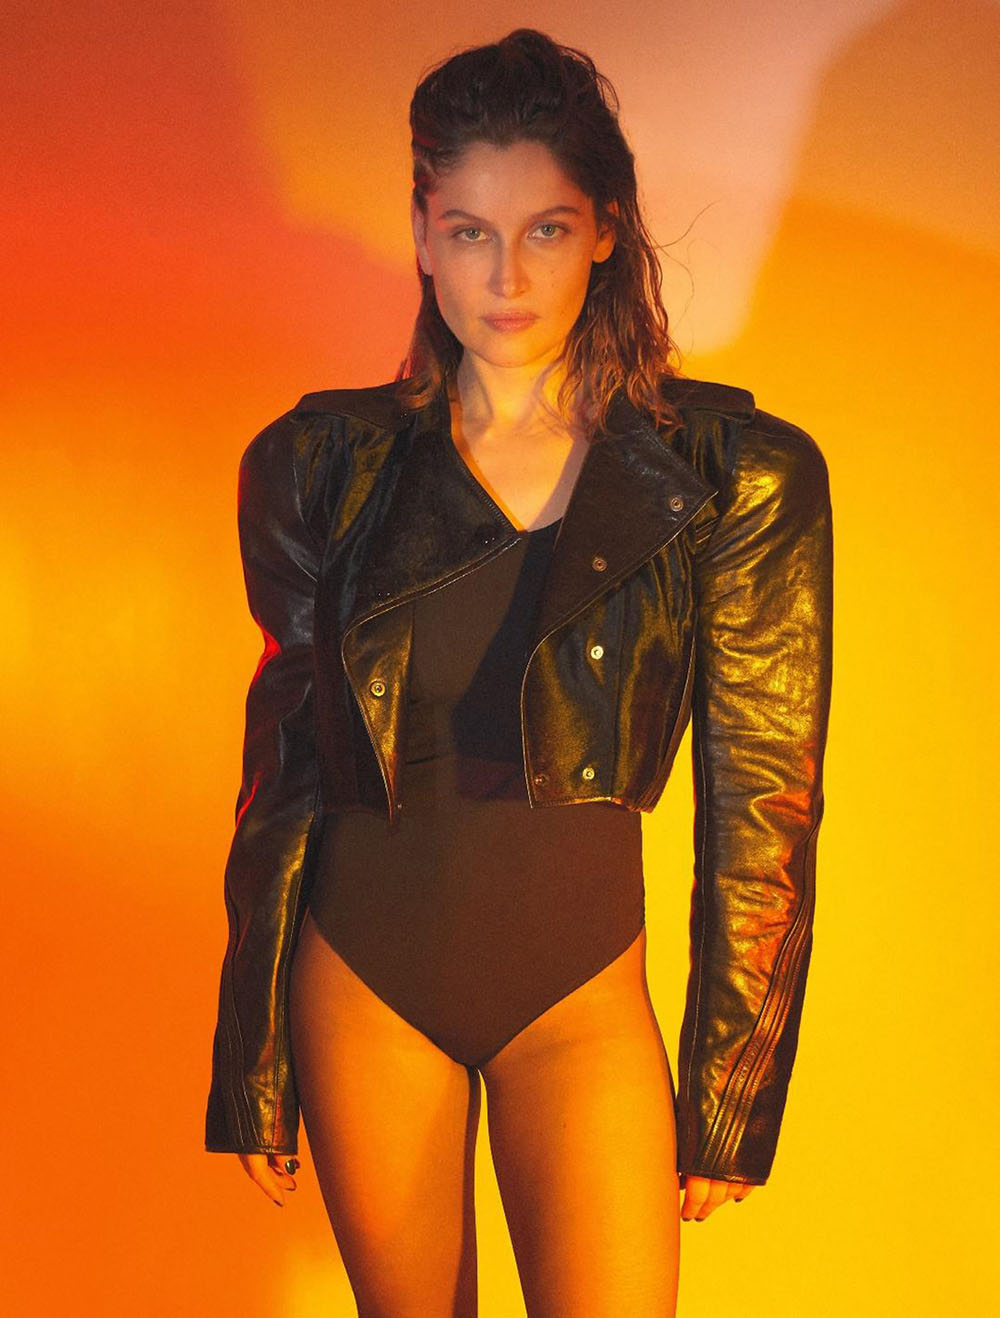 Laetitia Casta covers Numéro May 2020 by Emmanuel Giraud